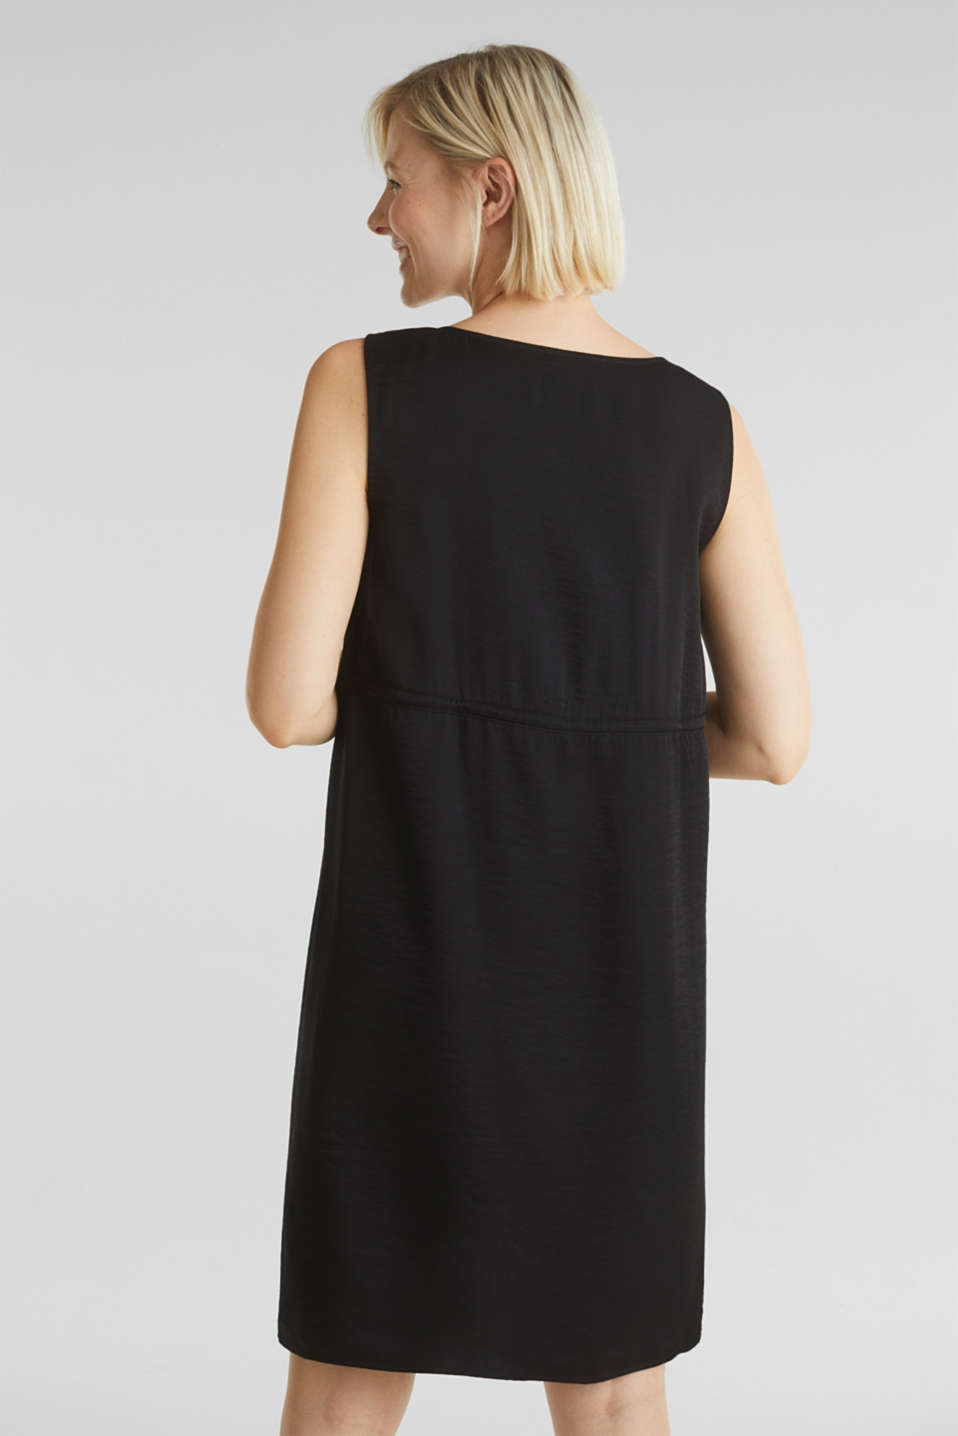 Woven dress with drawstring, LCBLACK, detail image number 3